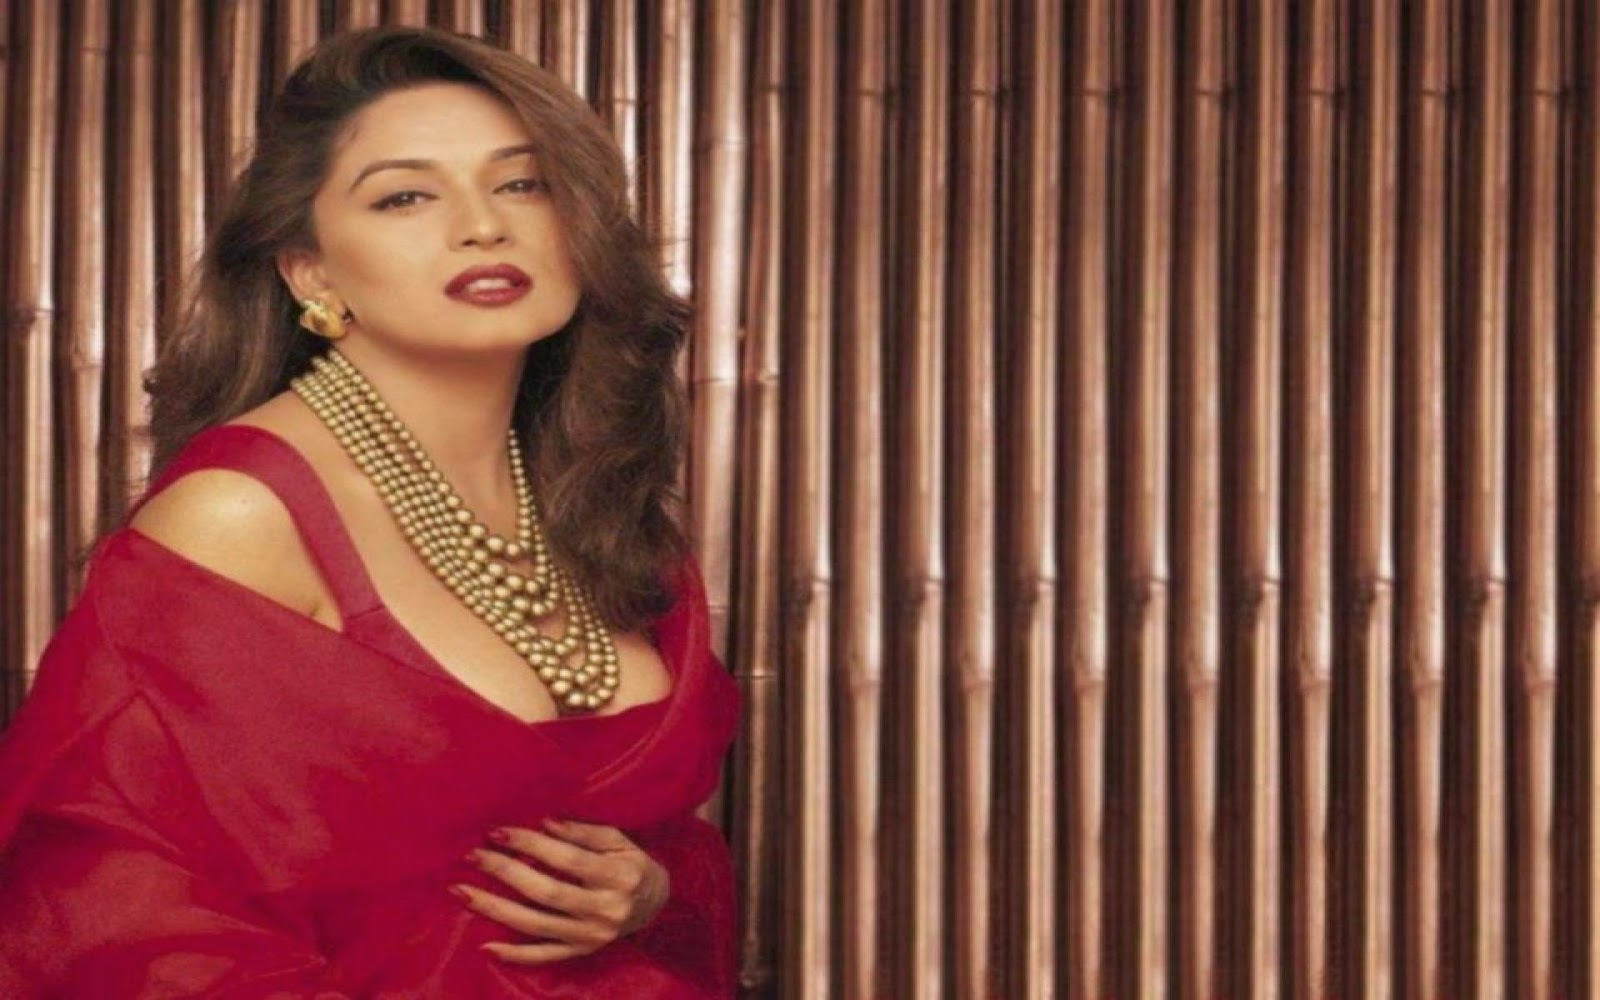 Bollywood Actress Maduri Dixit With Red Cloth HD Wallpaper Free Download